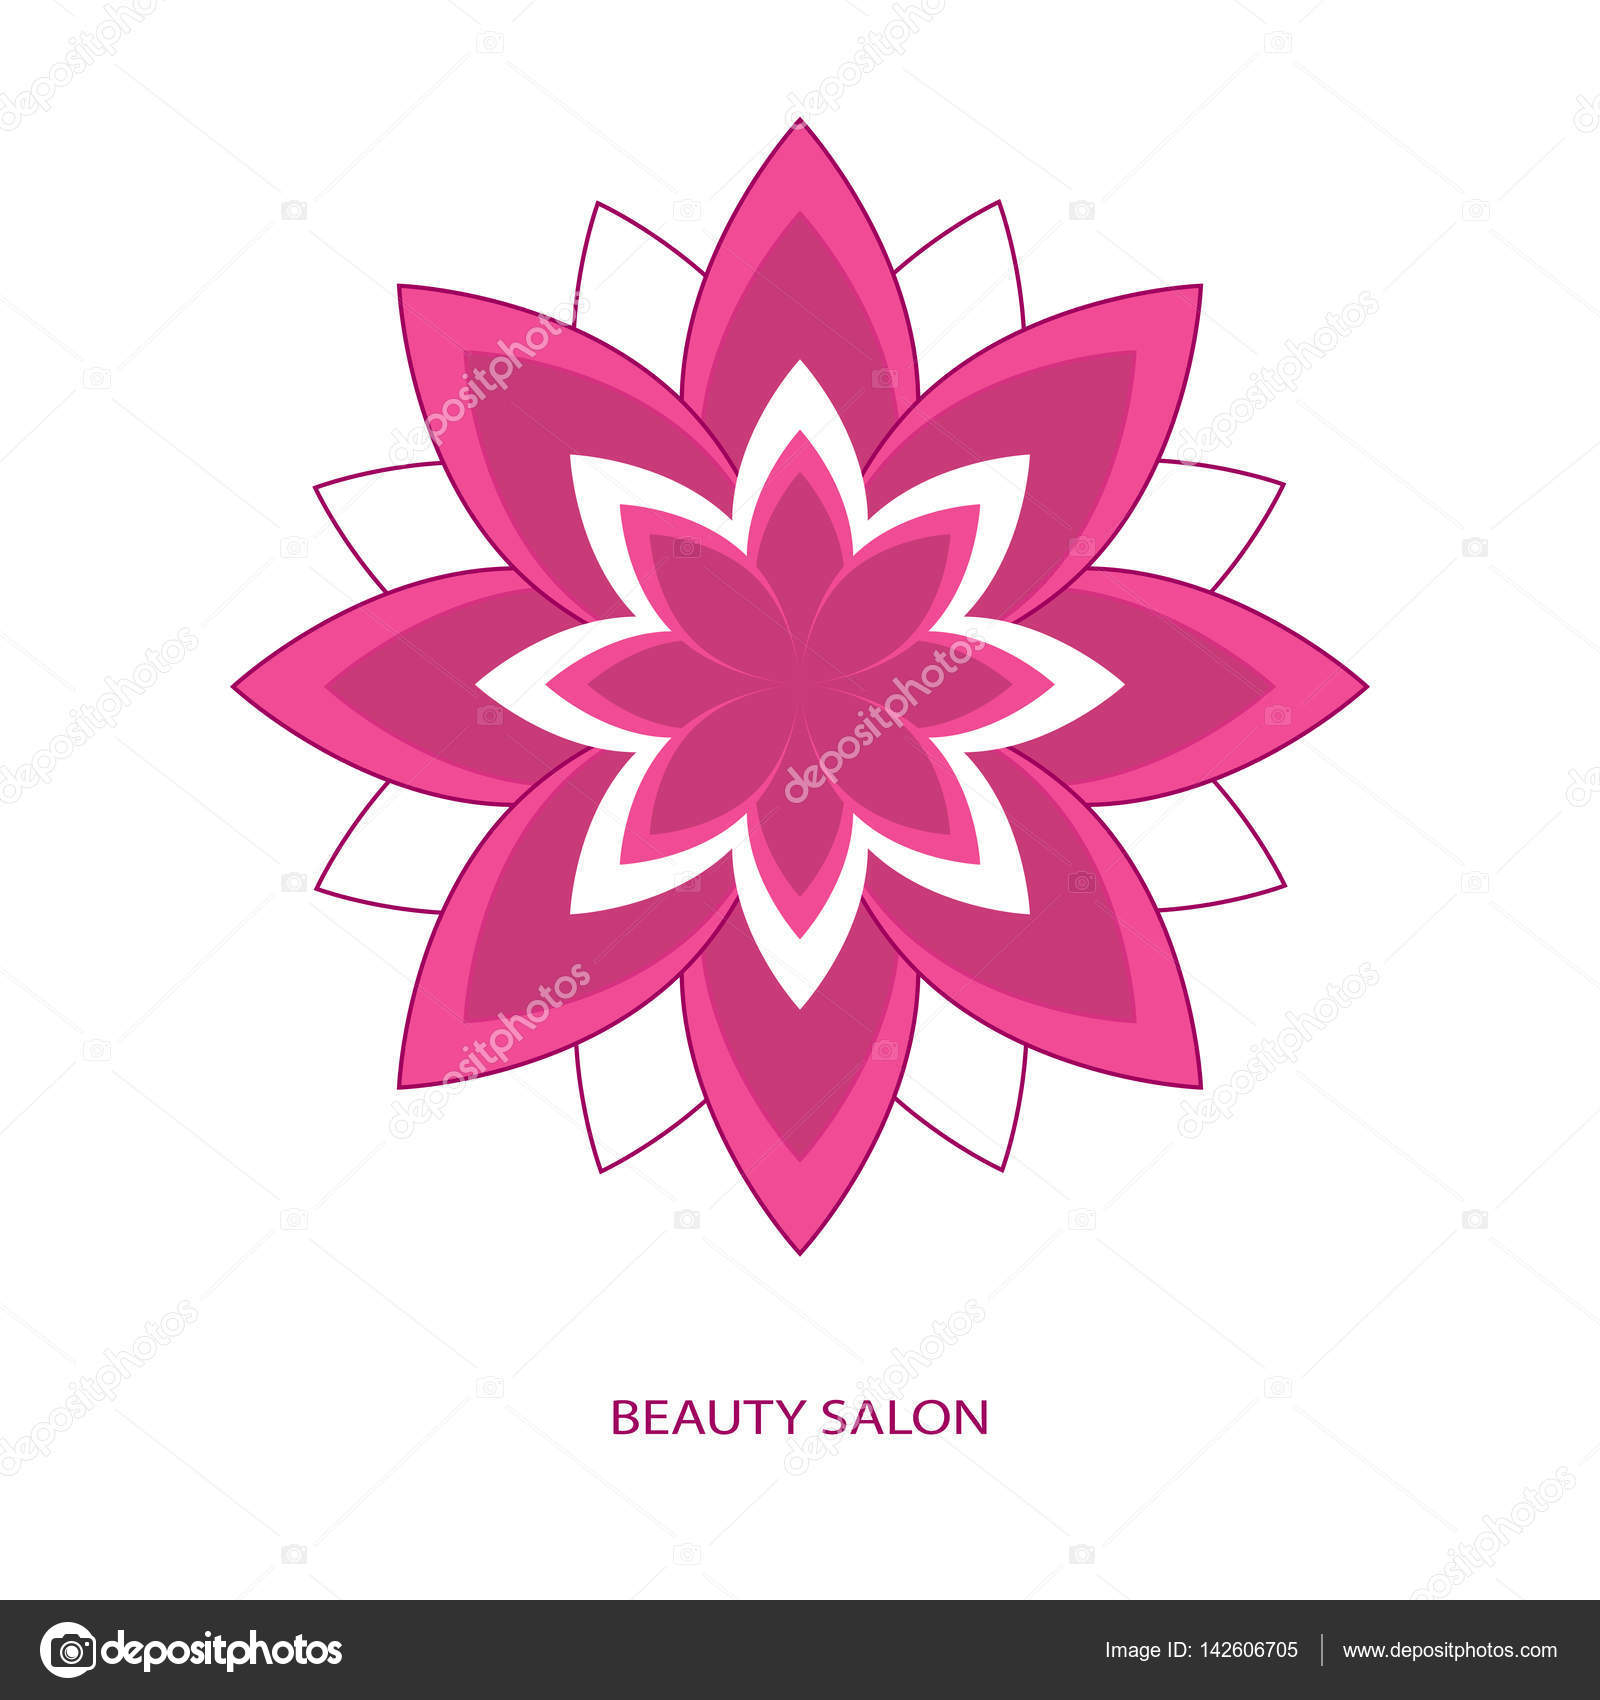 Logo beauty salon stock vector kozar12 142606705 logo beauty salon flower symbol vector by kozar12 izmirmasajfo